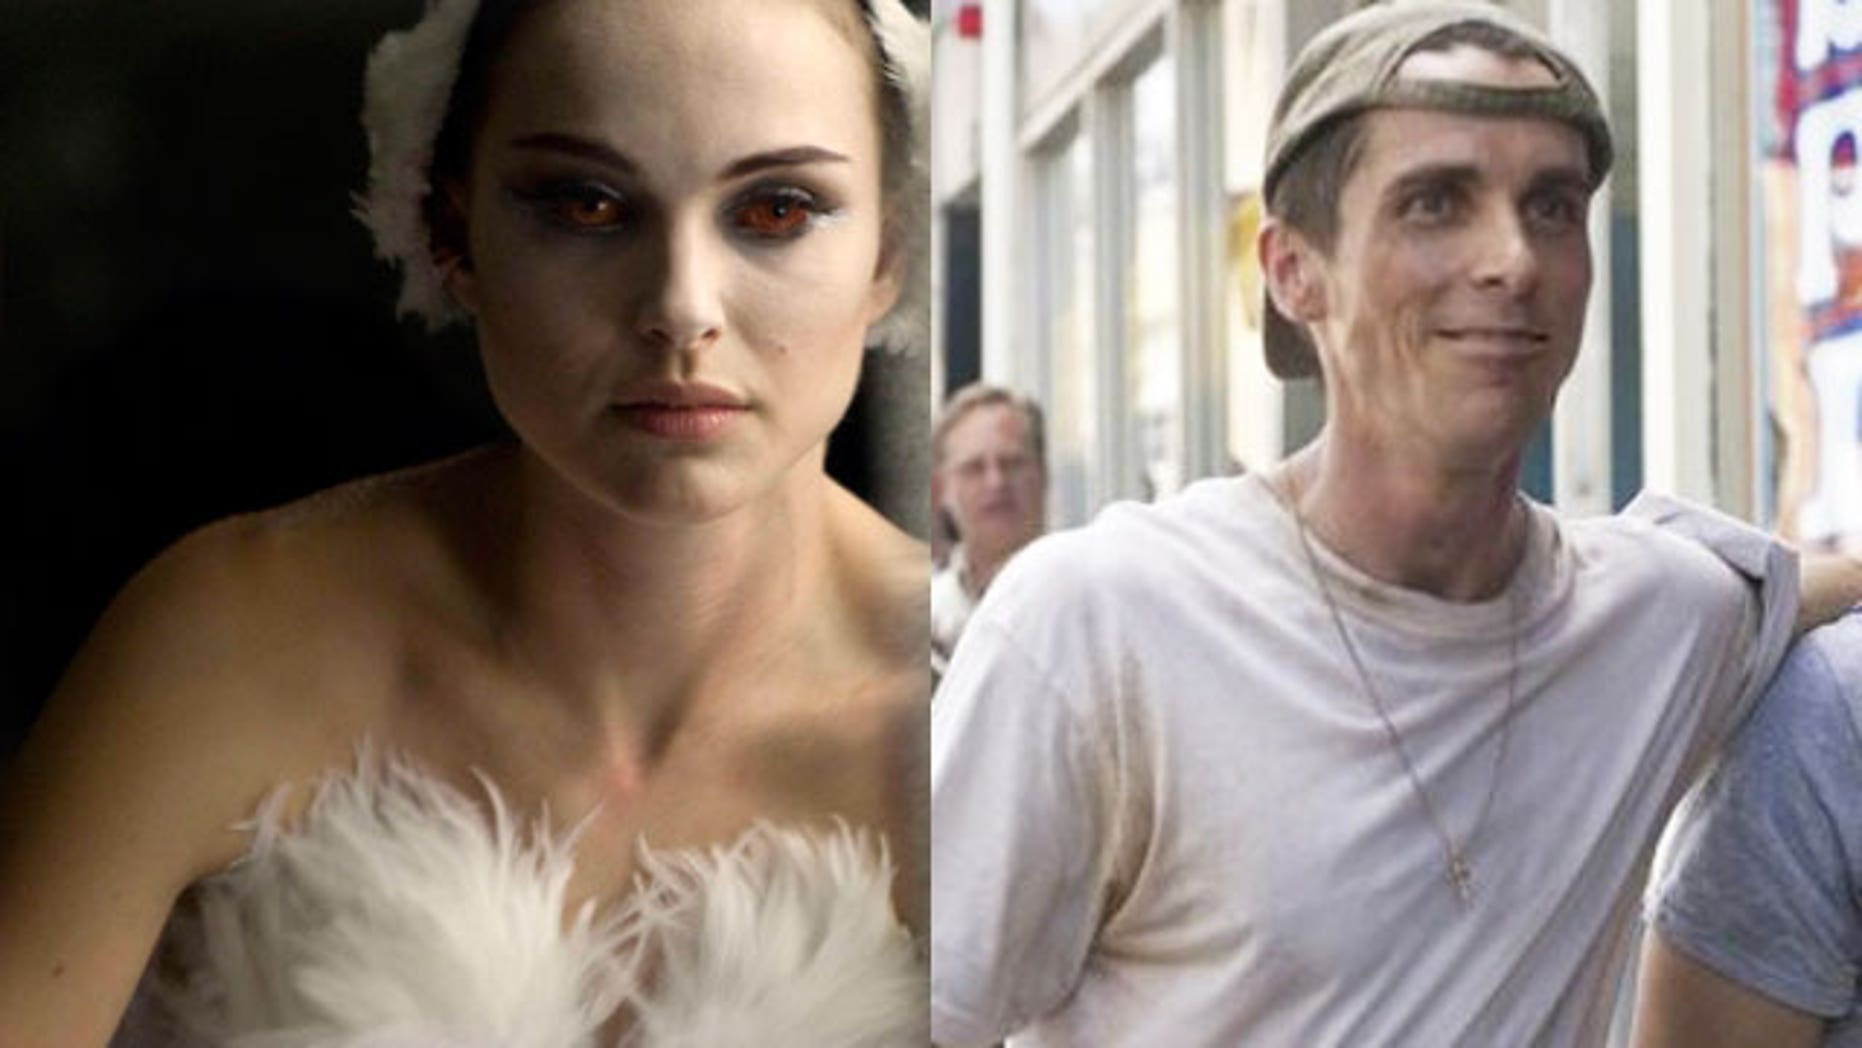 Natalie Portman and Christian Bale both lost significant amounts of weight in roles that have already won them Golden Globe Awards.